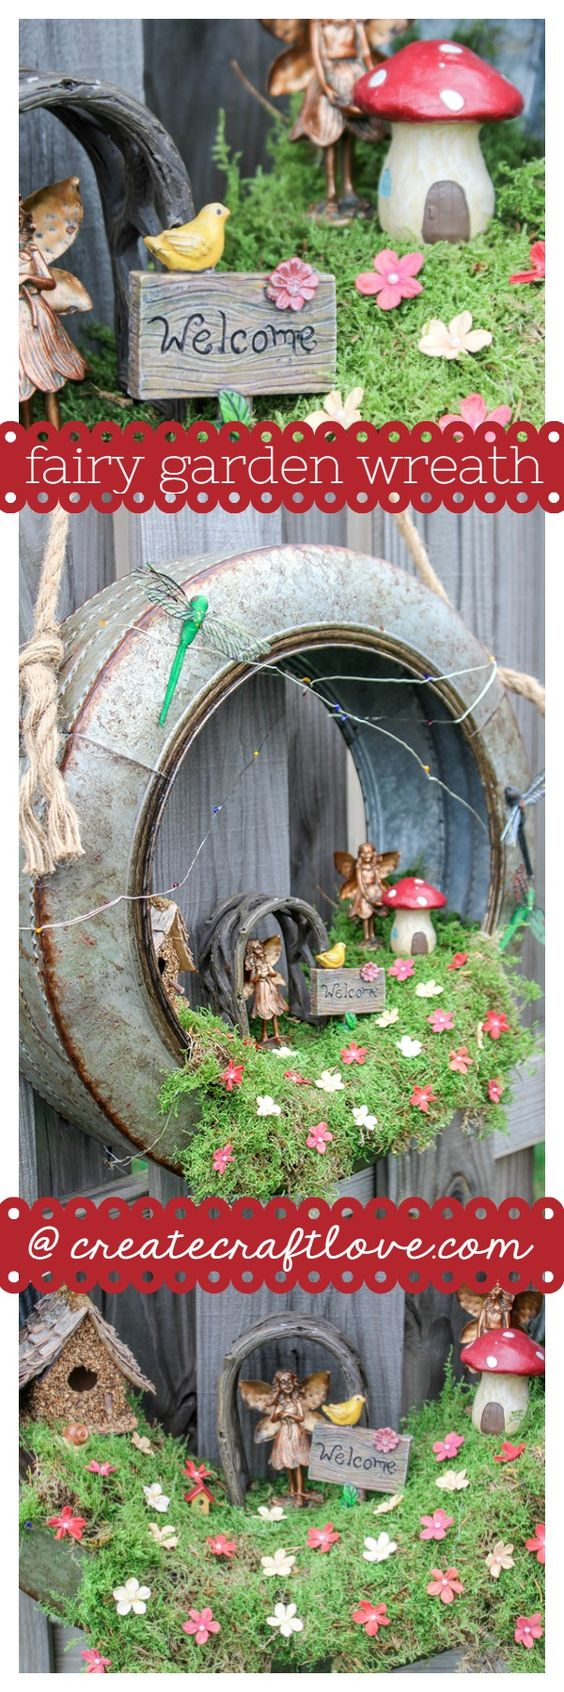 DIY Fairy Garden Wreath.